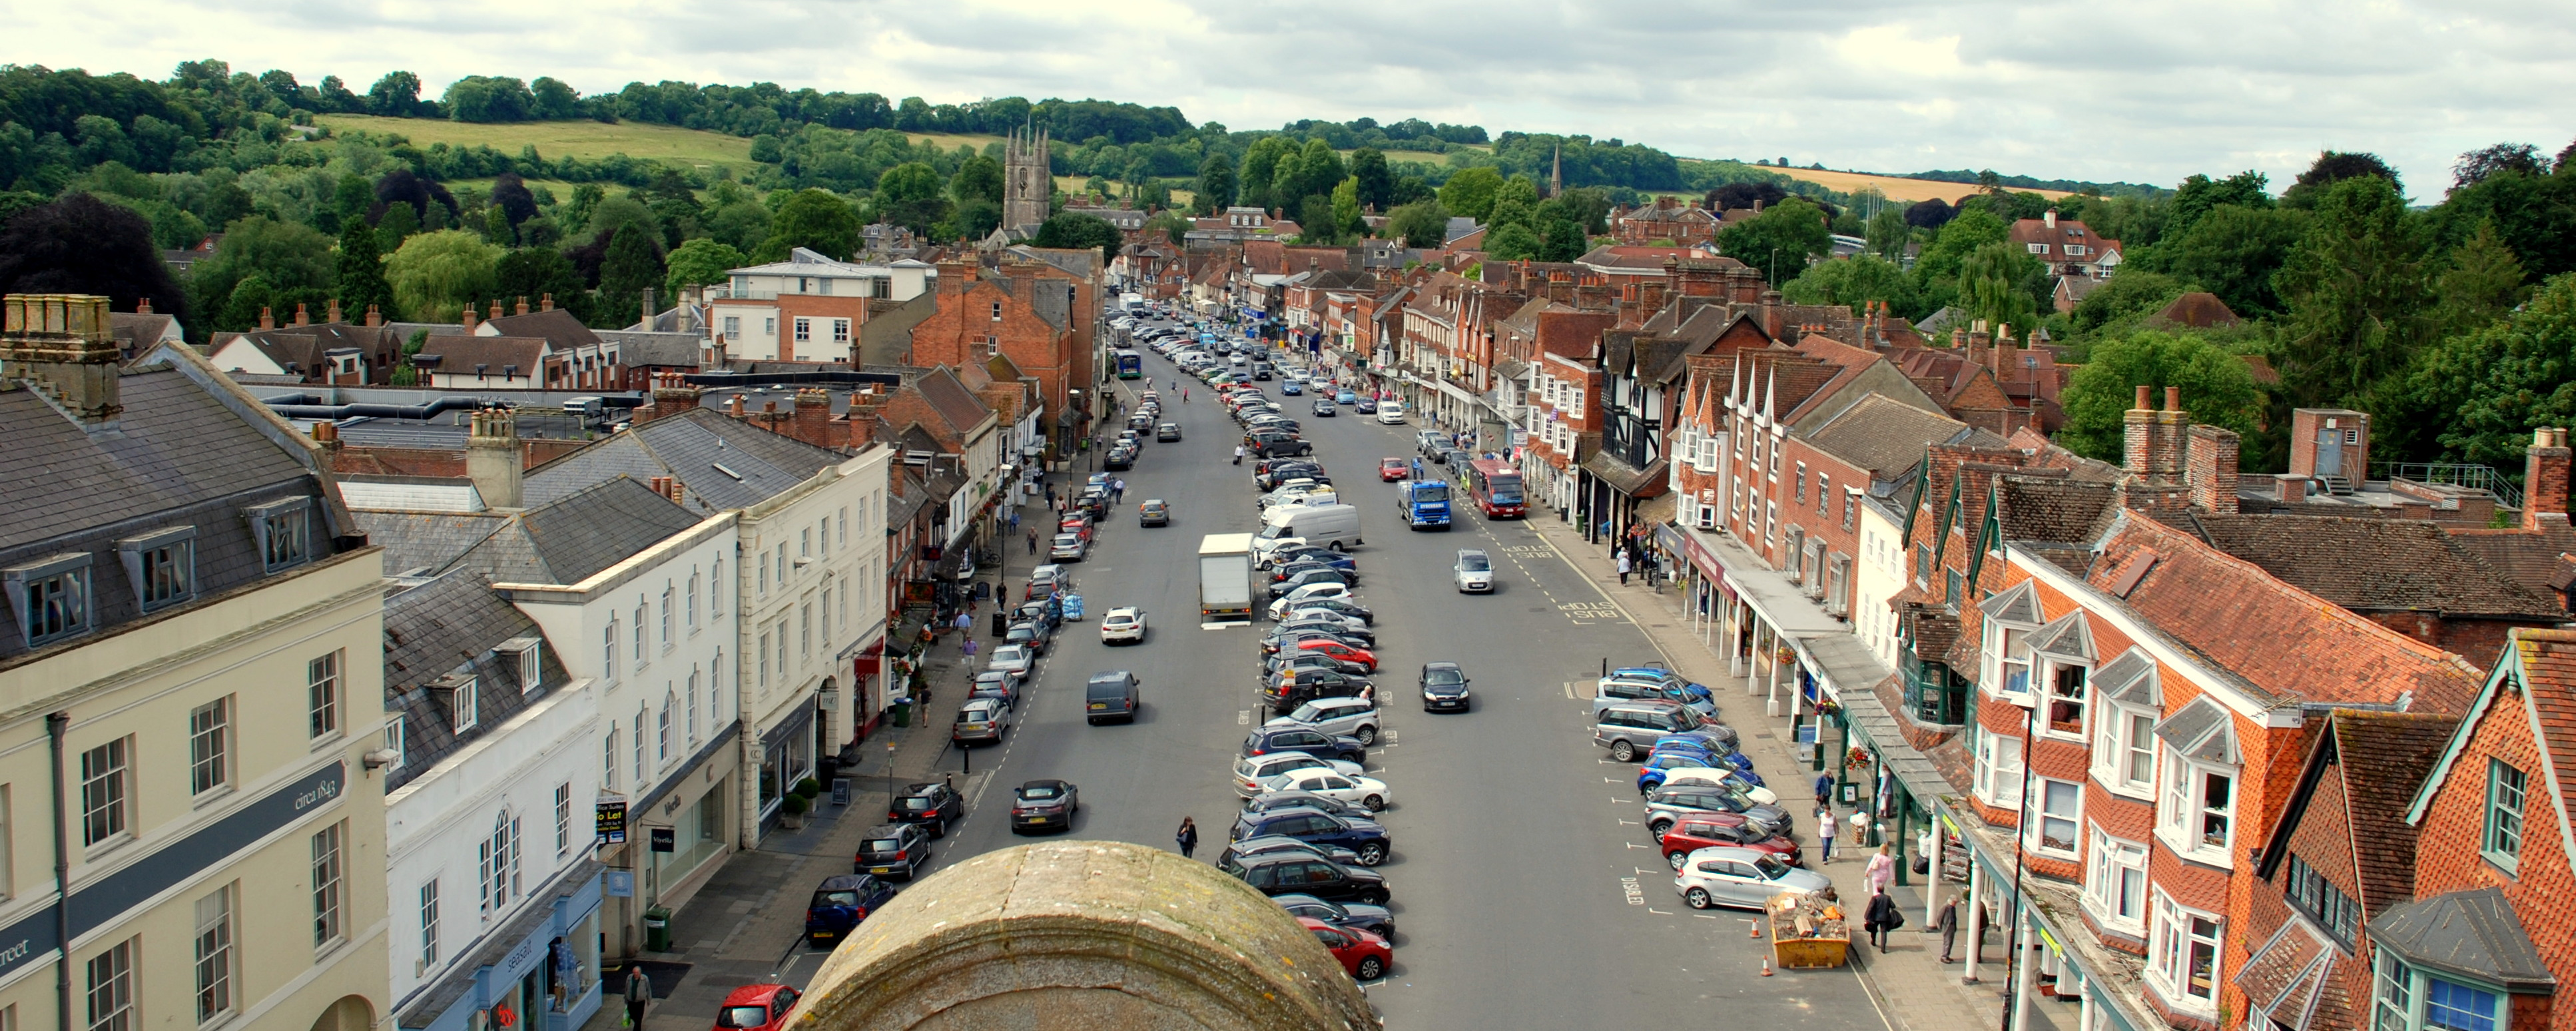 high-street-panorama-from-roof